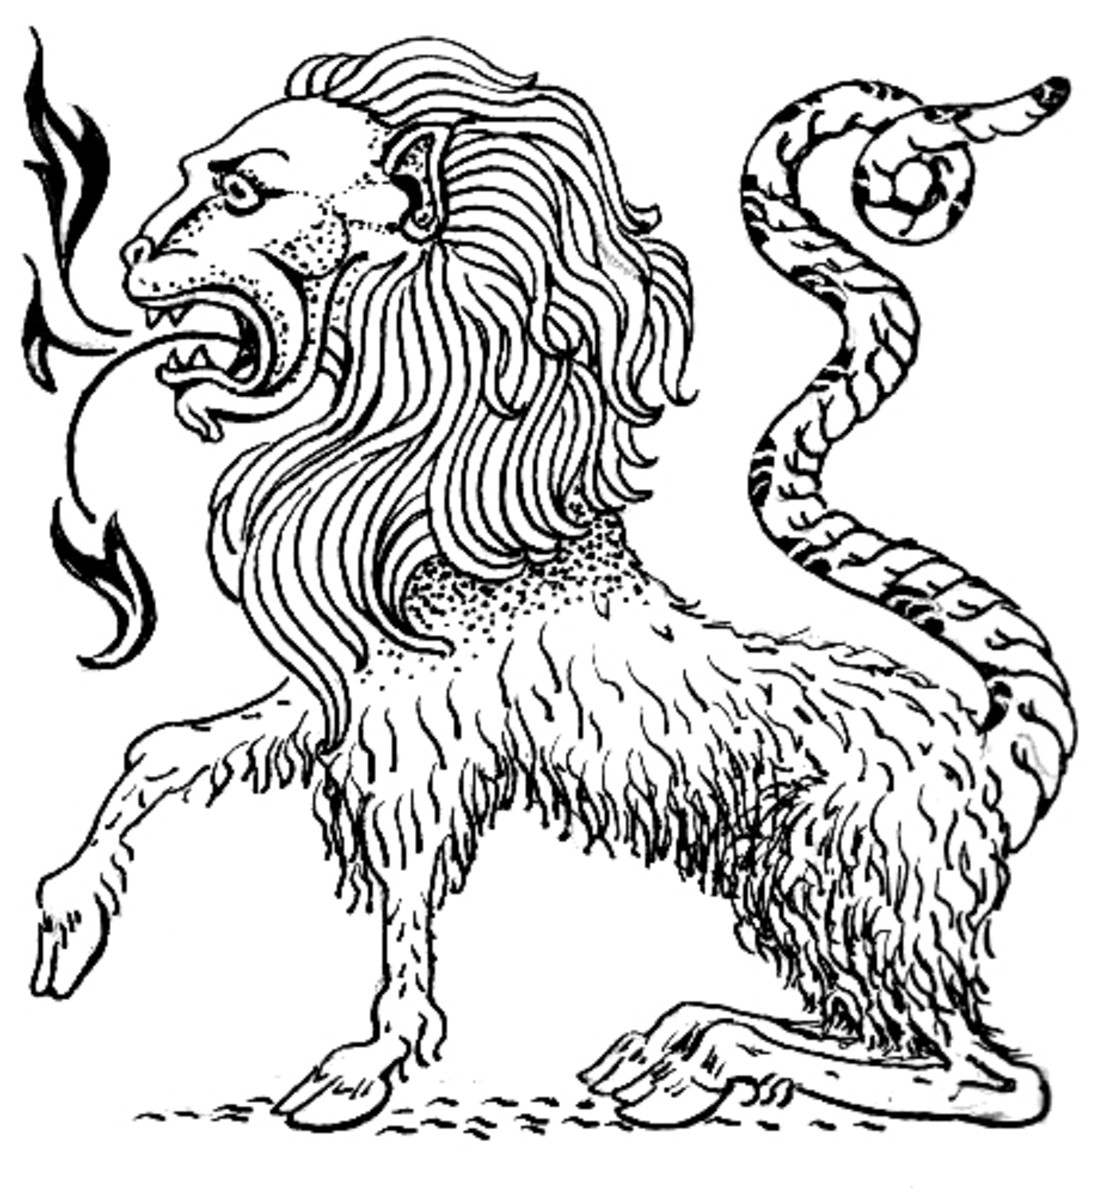 The Chimera in Greek Mythology